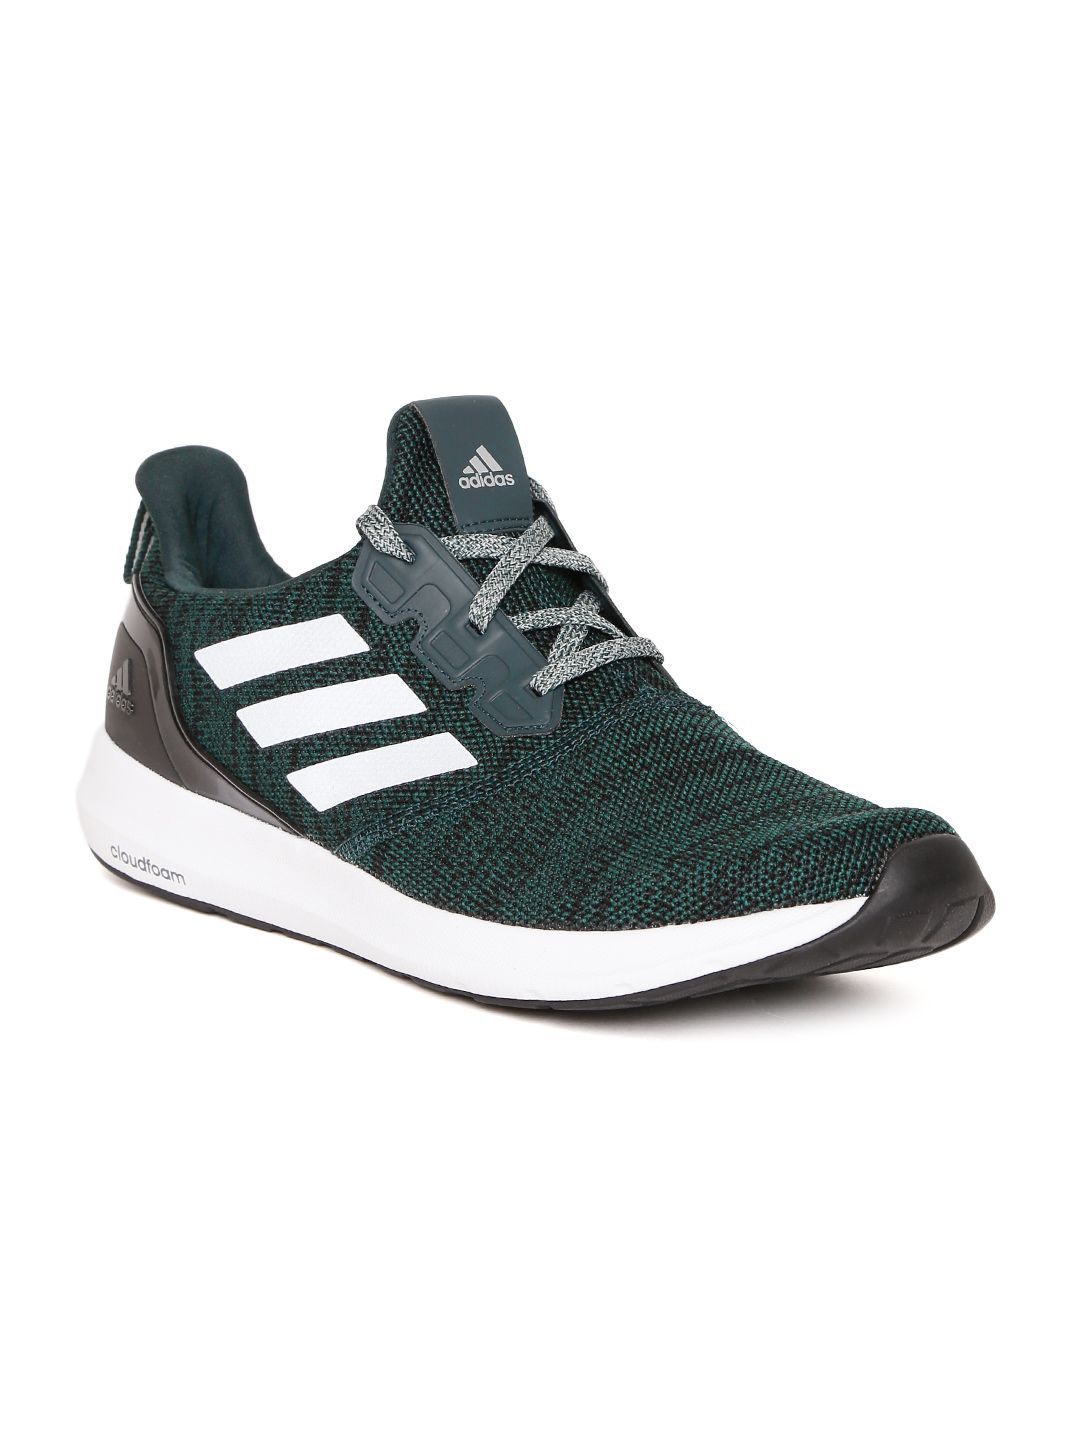 huge discount 83281 627e3 Adidas ZETA 1.0 Green Running Shoes - Buy Adidas ZETA 1.0 Green Running  Shoes Online at Best Prices in India on Snapdeal